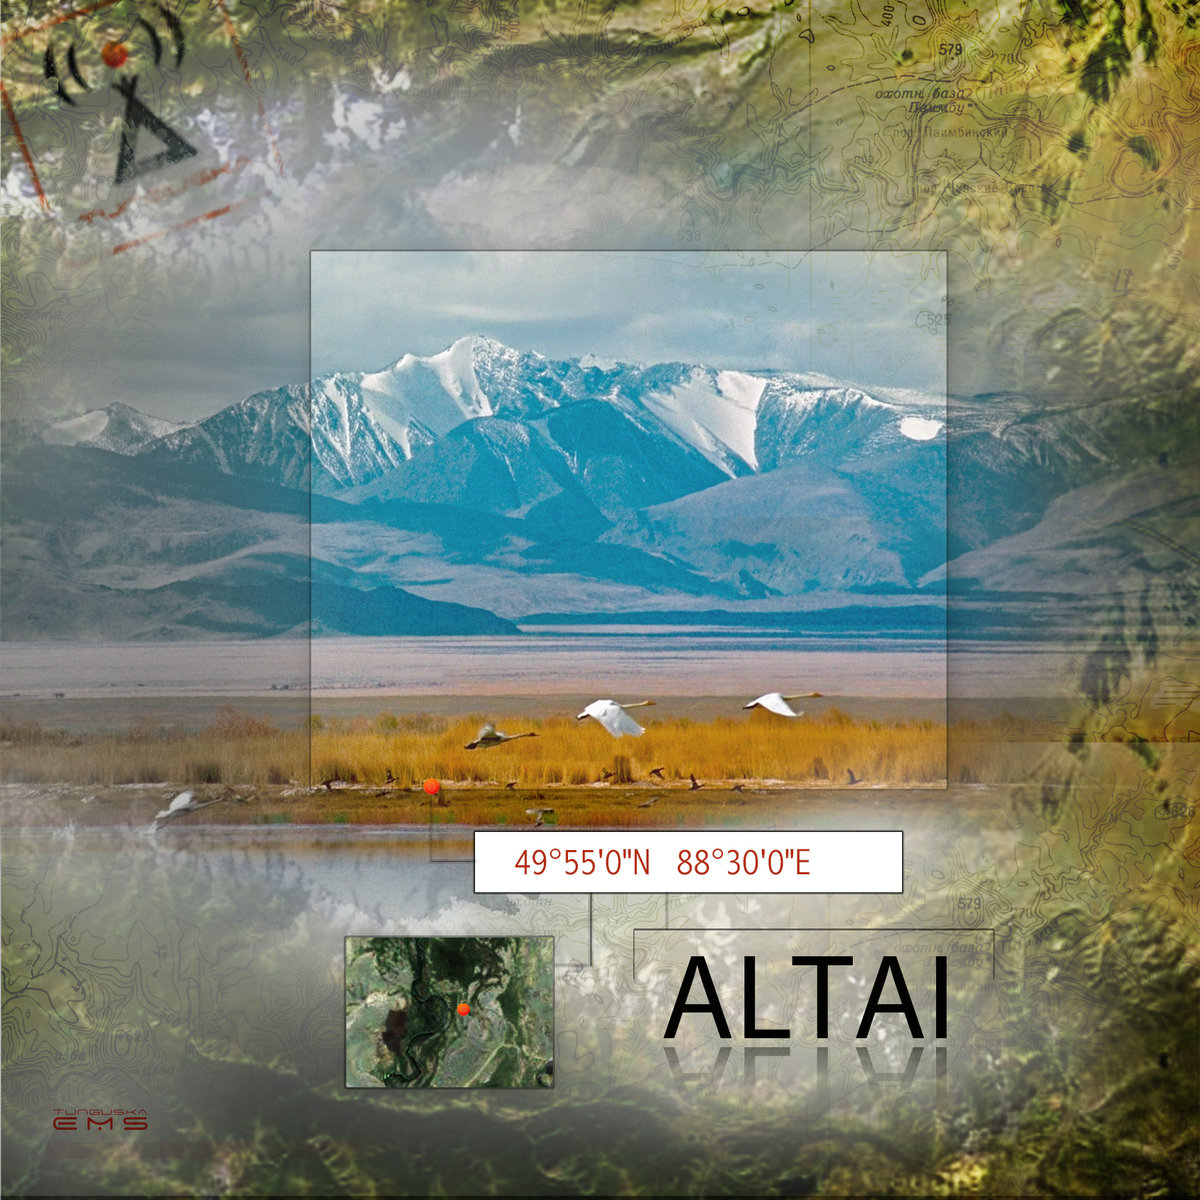 Flying Hills - Our Thoughts of You (single) @ 'Point - Altai' album (electronic, ambient)